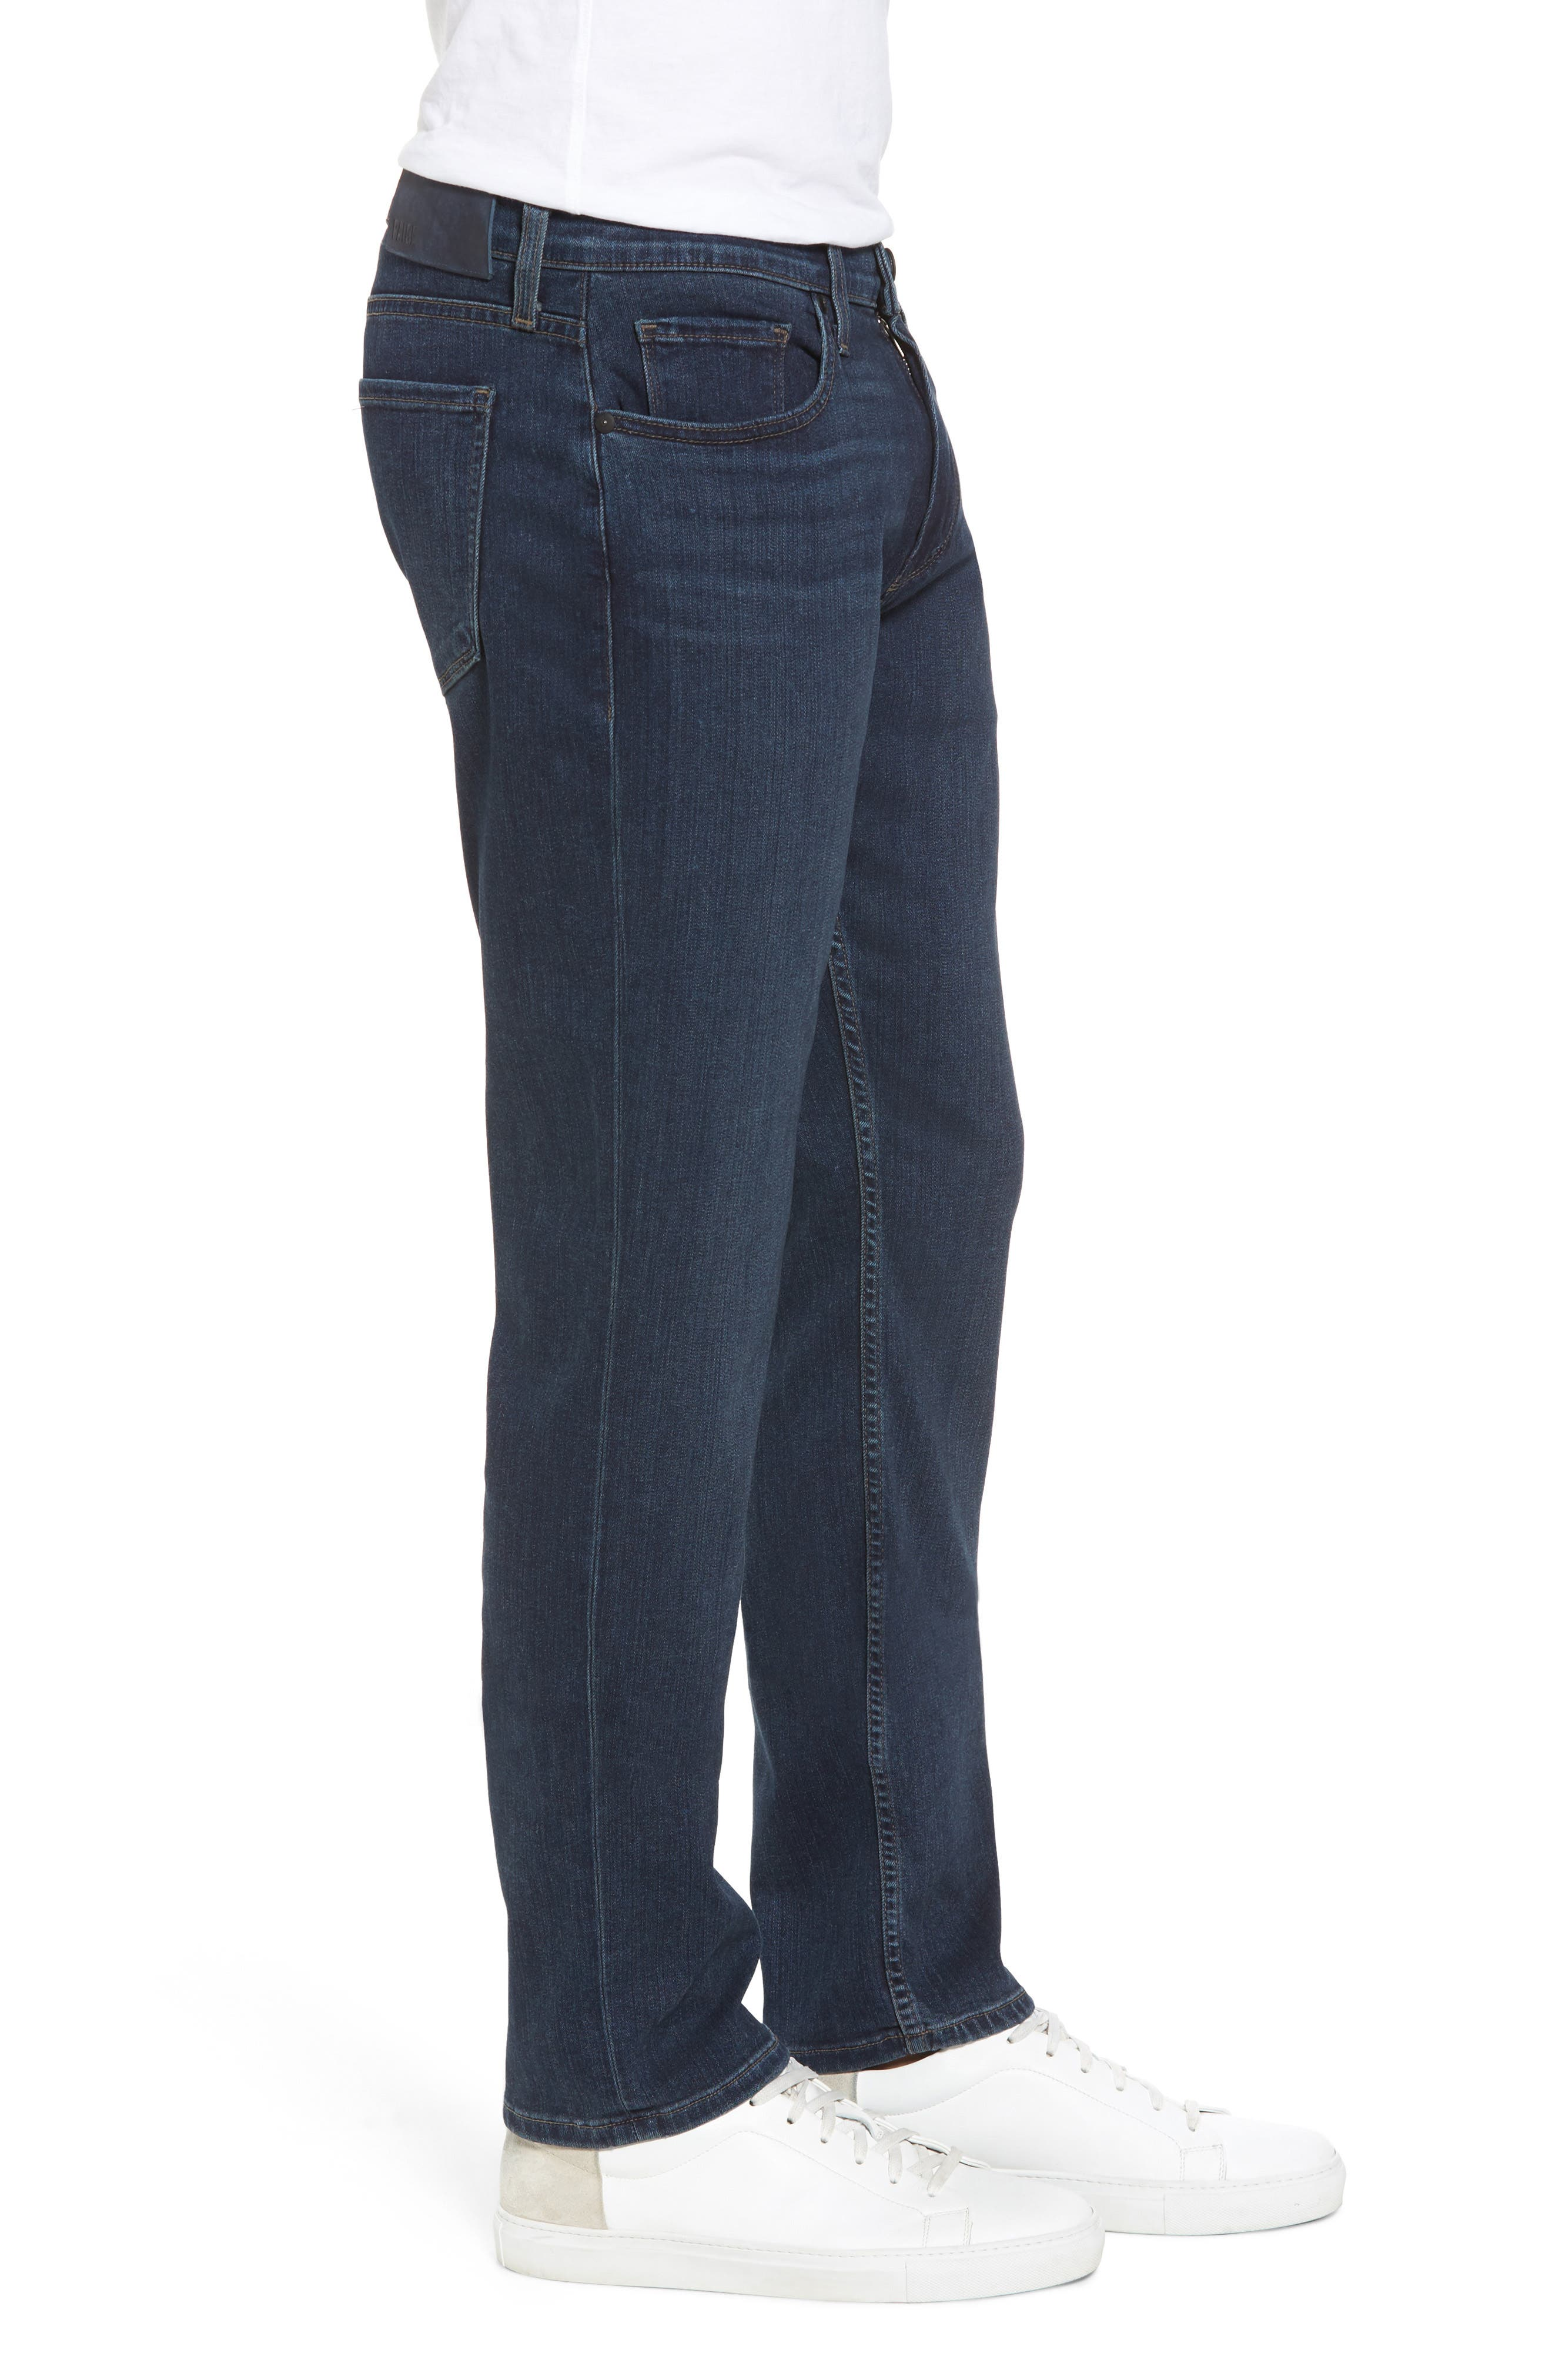 Transcend - Federal Slim Straight Fit Jeans,                             Alternate thumbnail 3, color,                             Benji